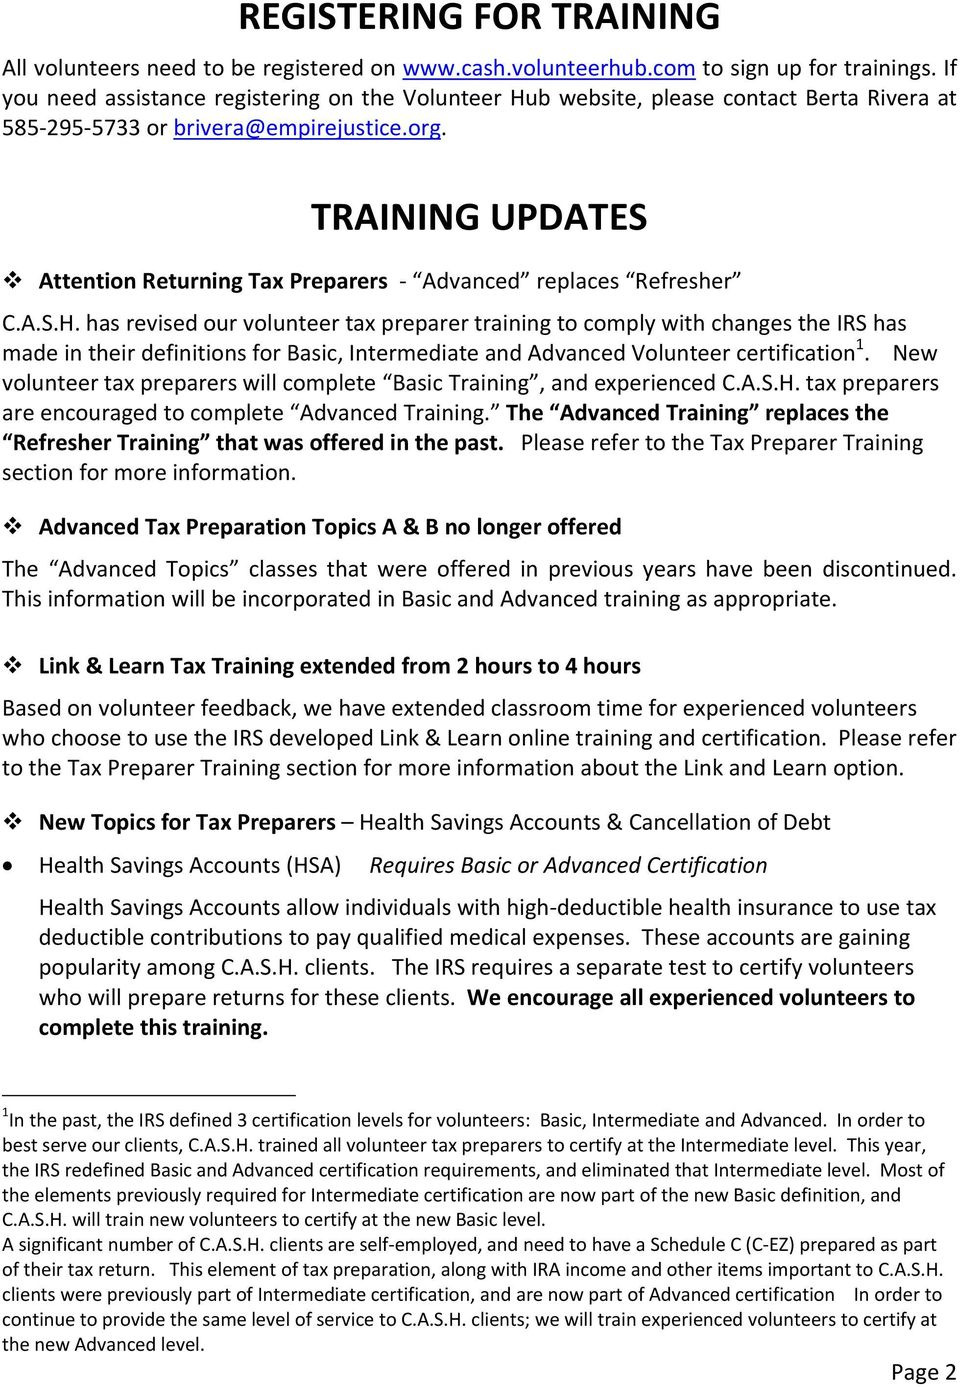 TRAINING UPDATES Attention Returning Tax Preparers Advanced replaces Refresher C.A.S.H.